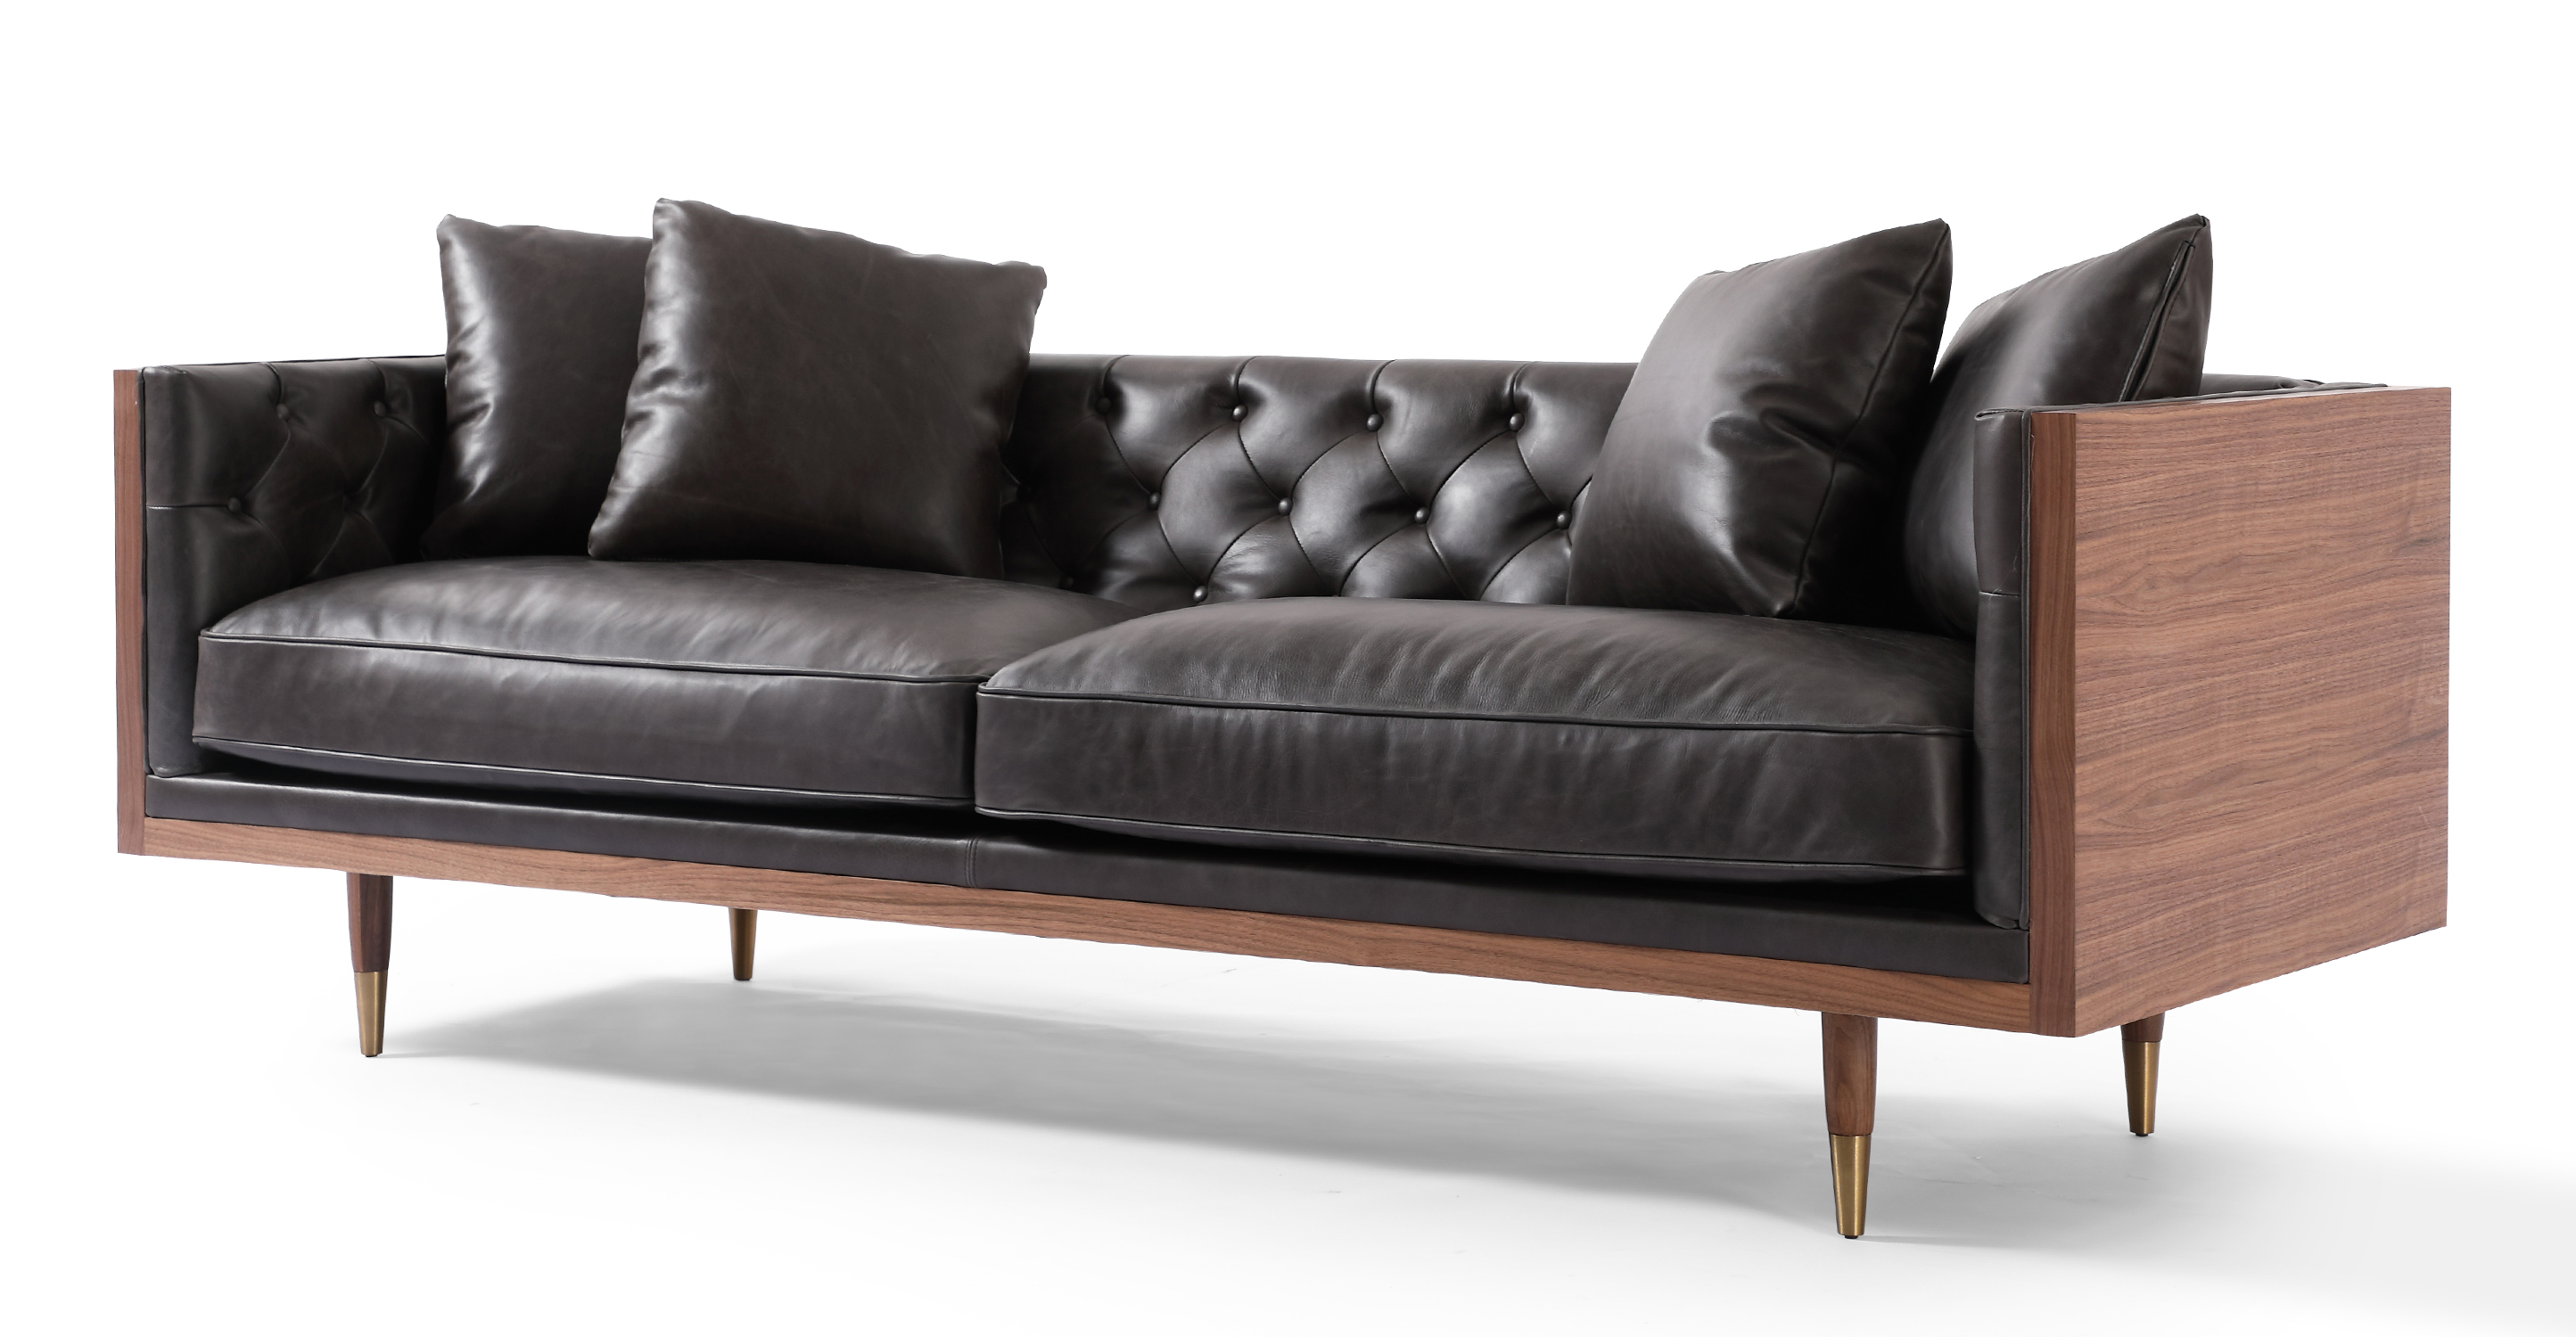 "Woodrow Neo 87"" Leather Sofa, Walnut/Saddle Black"